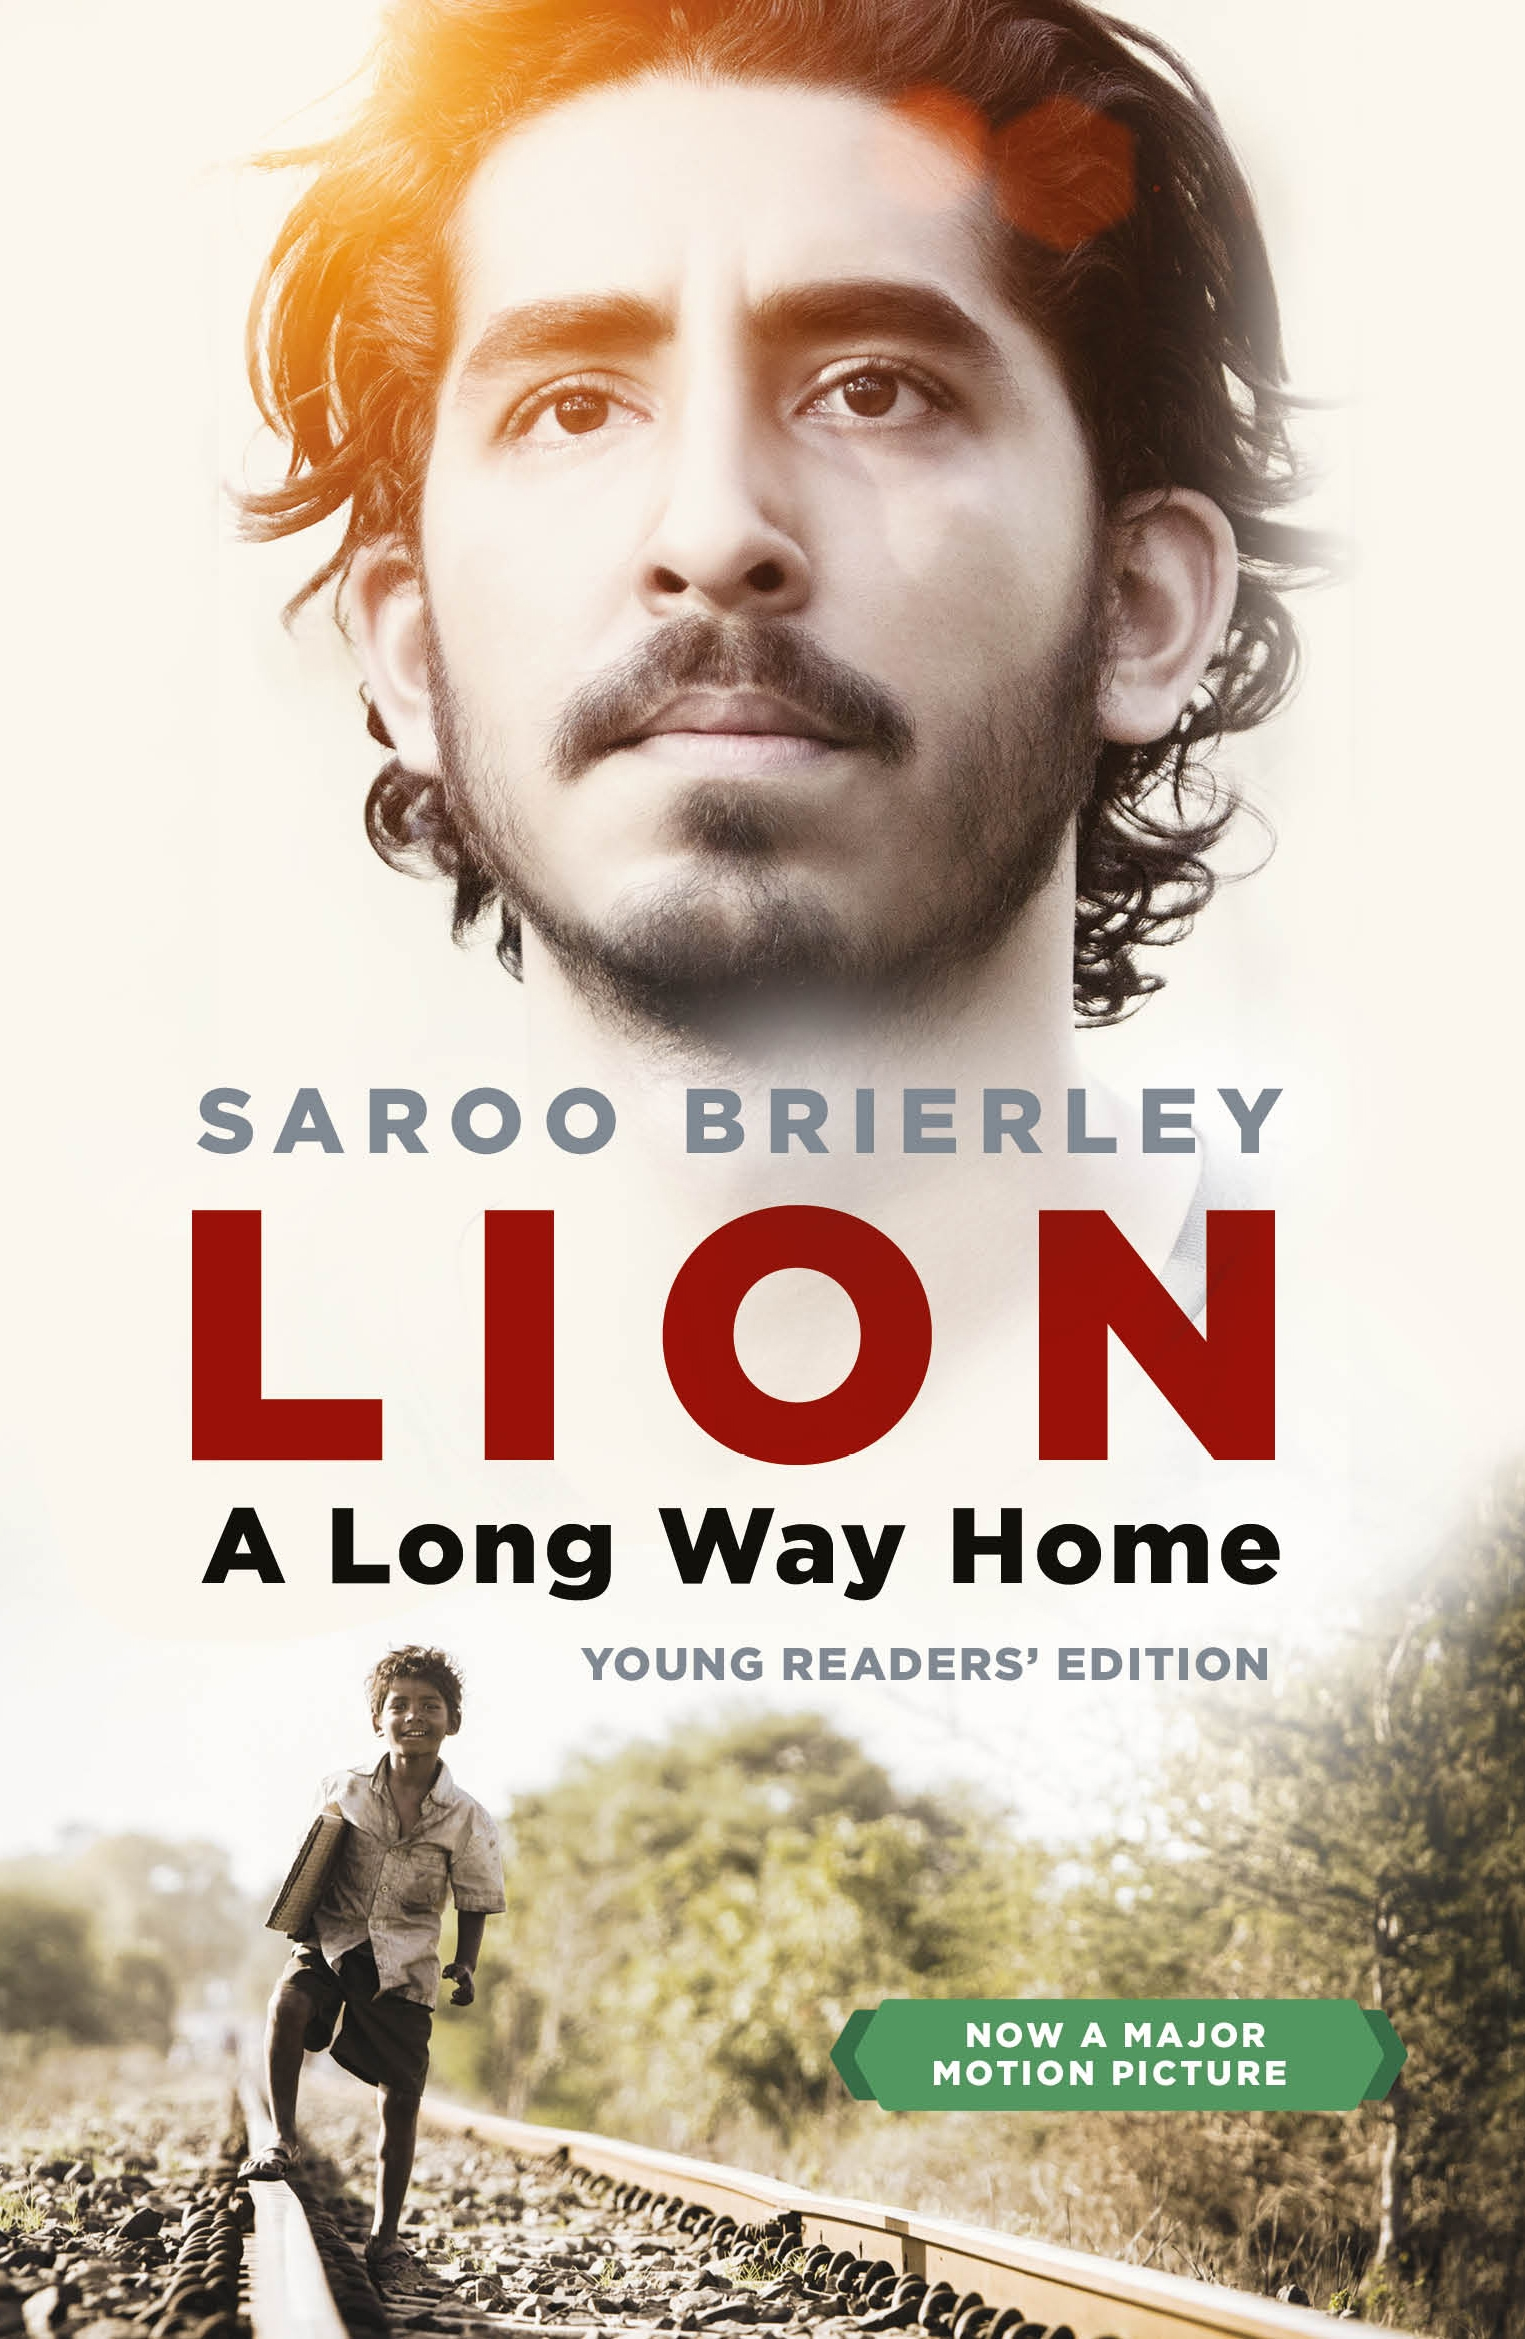 Lion: A Long Way Home (Young Readers' Edition) by Saroo Brierley, ISBN: 9780143784760